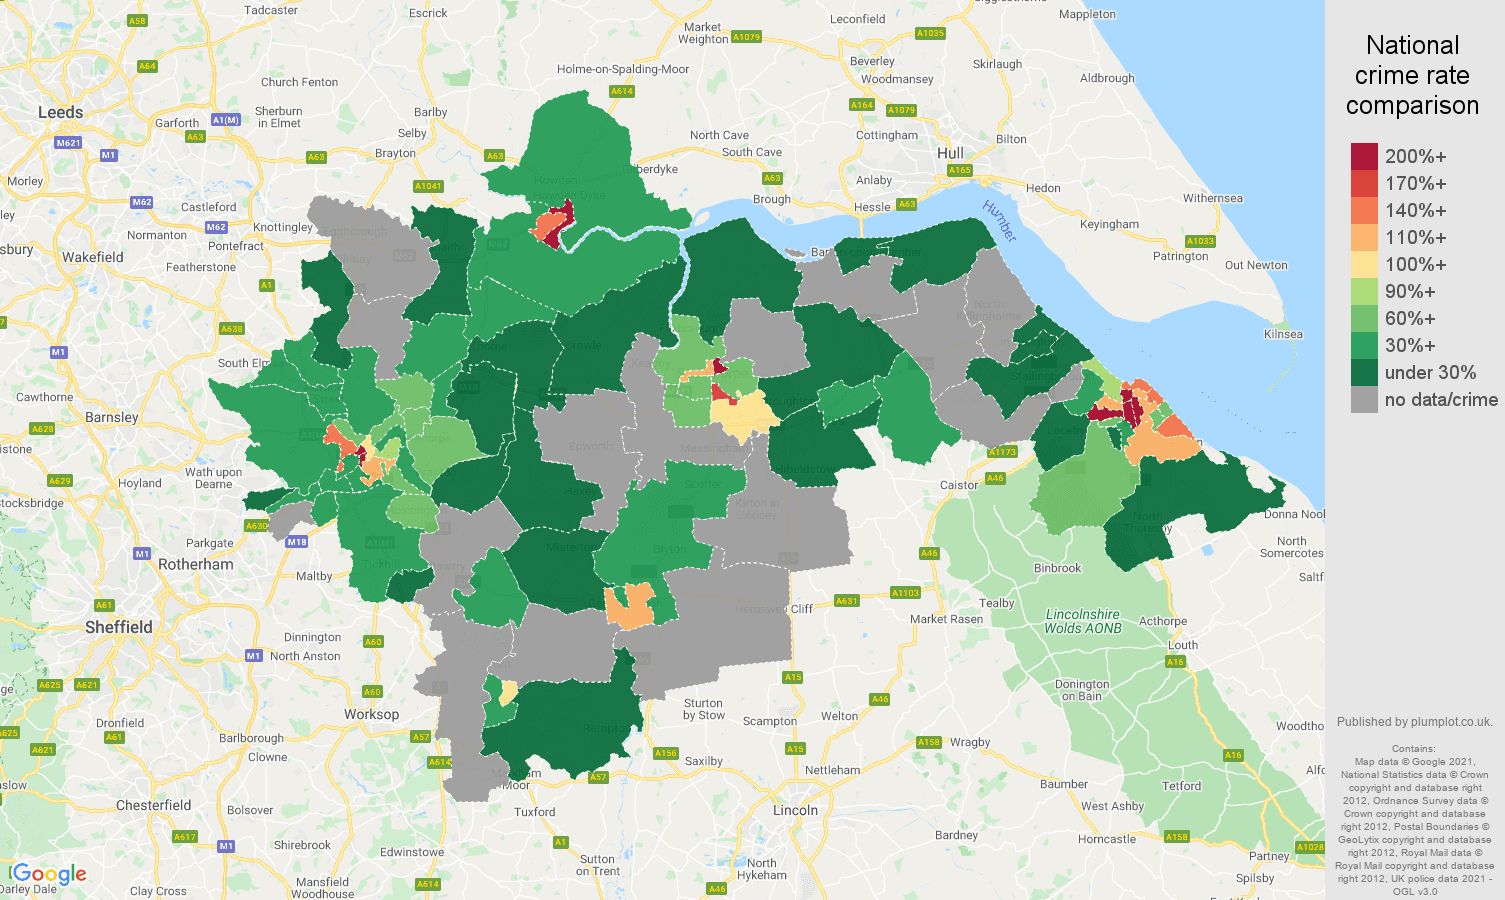 Doncaster bicycle theft crime rate comparison map